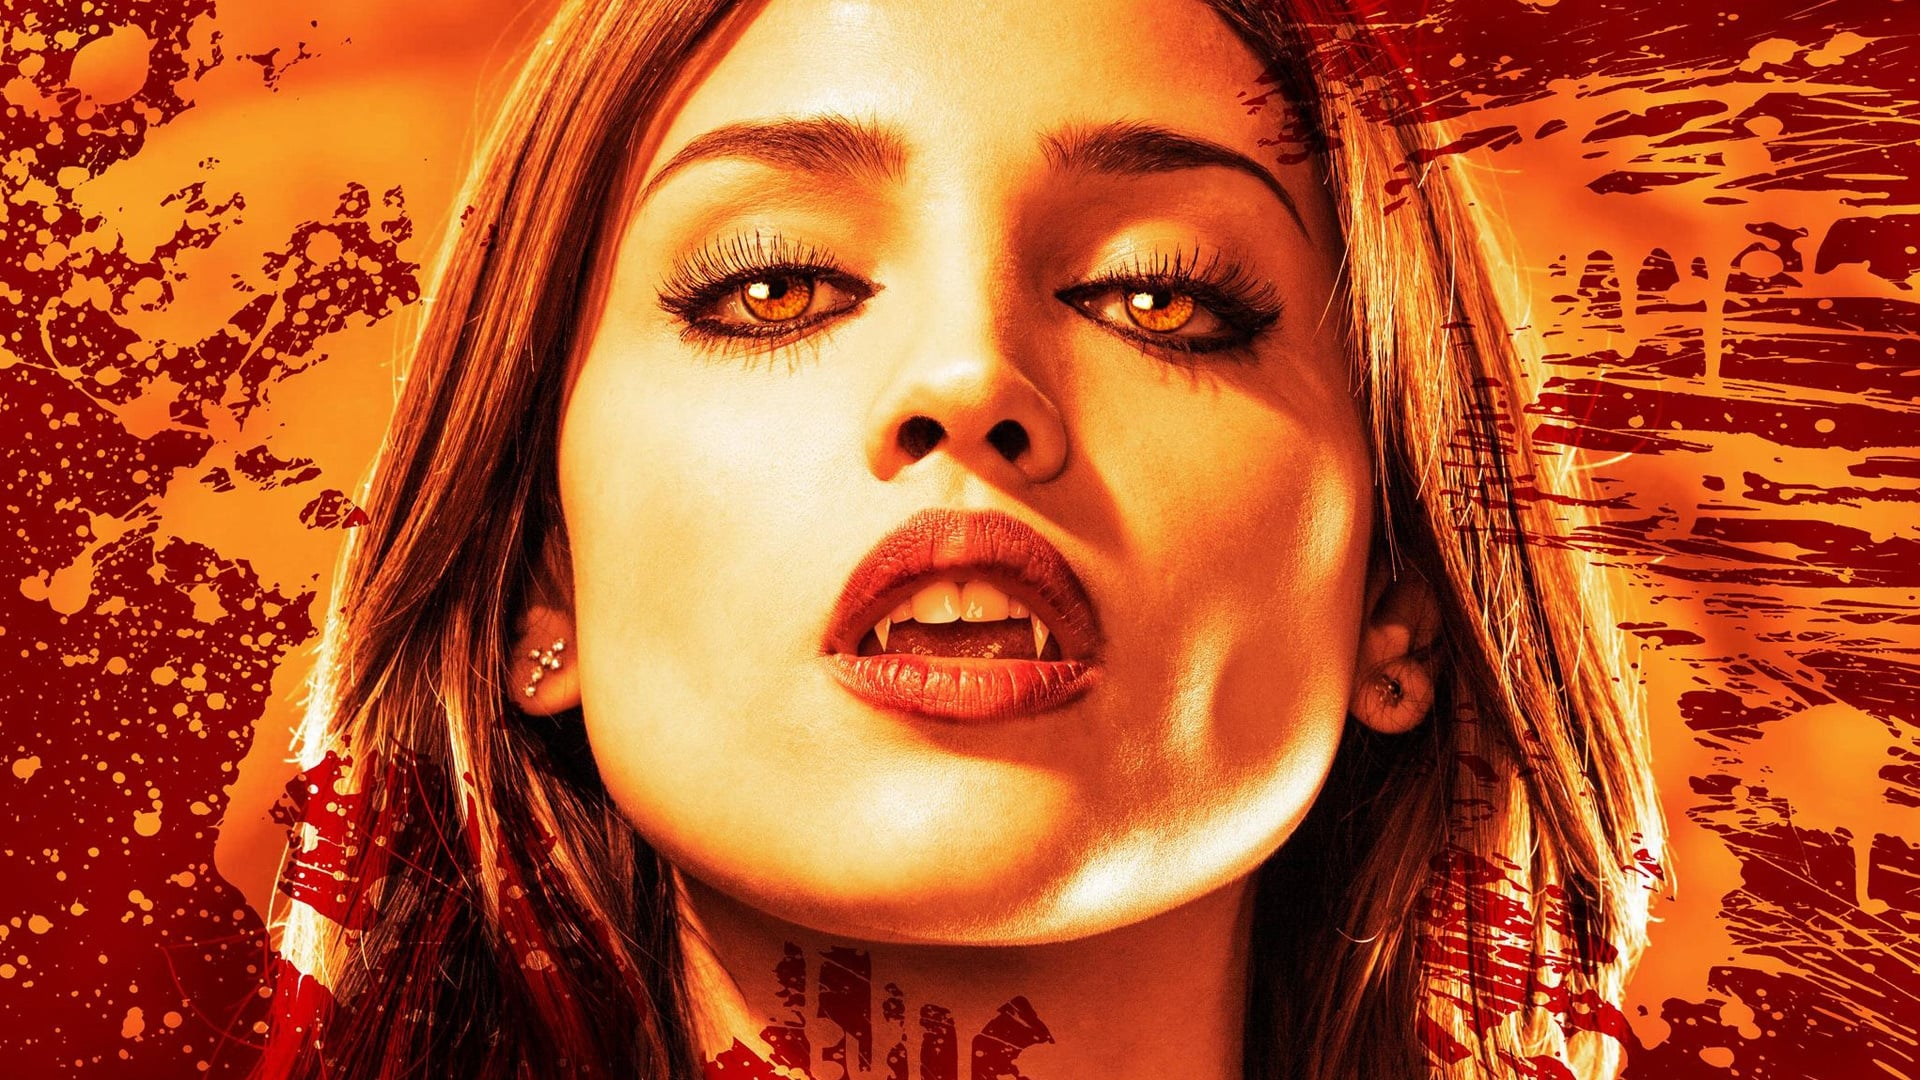 Second season for 'From Dusk Till Dawn: The Series'